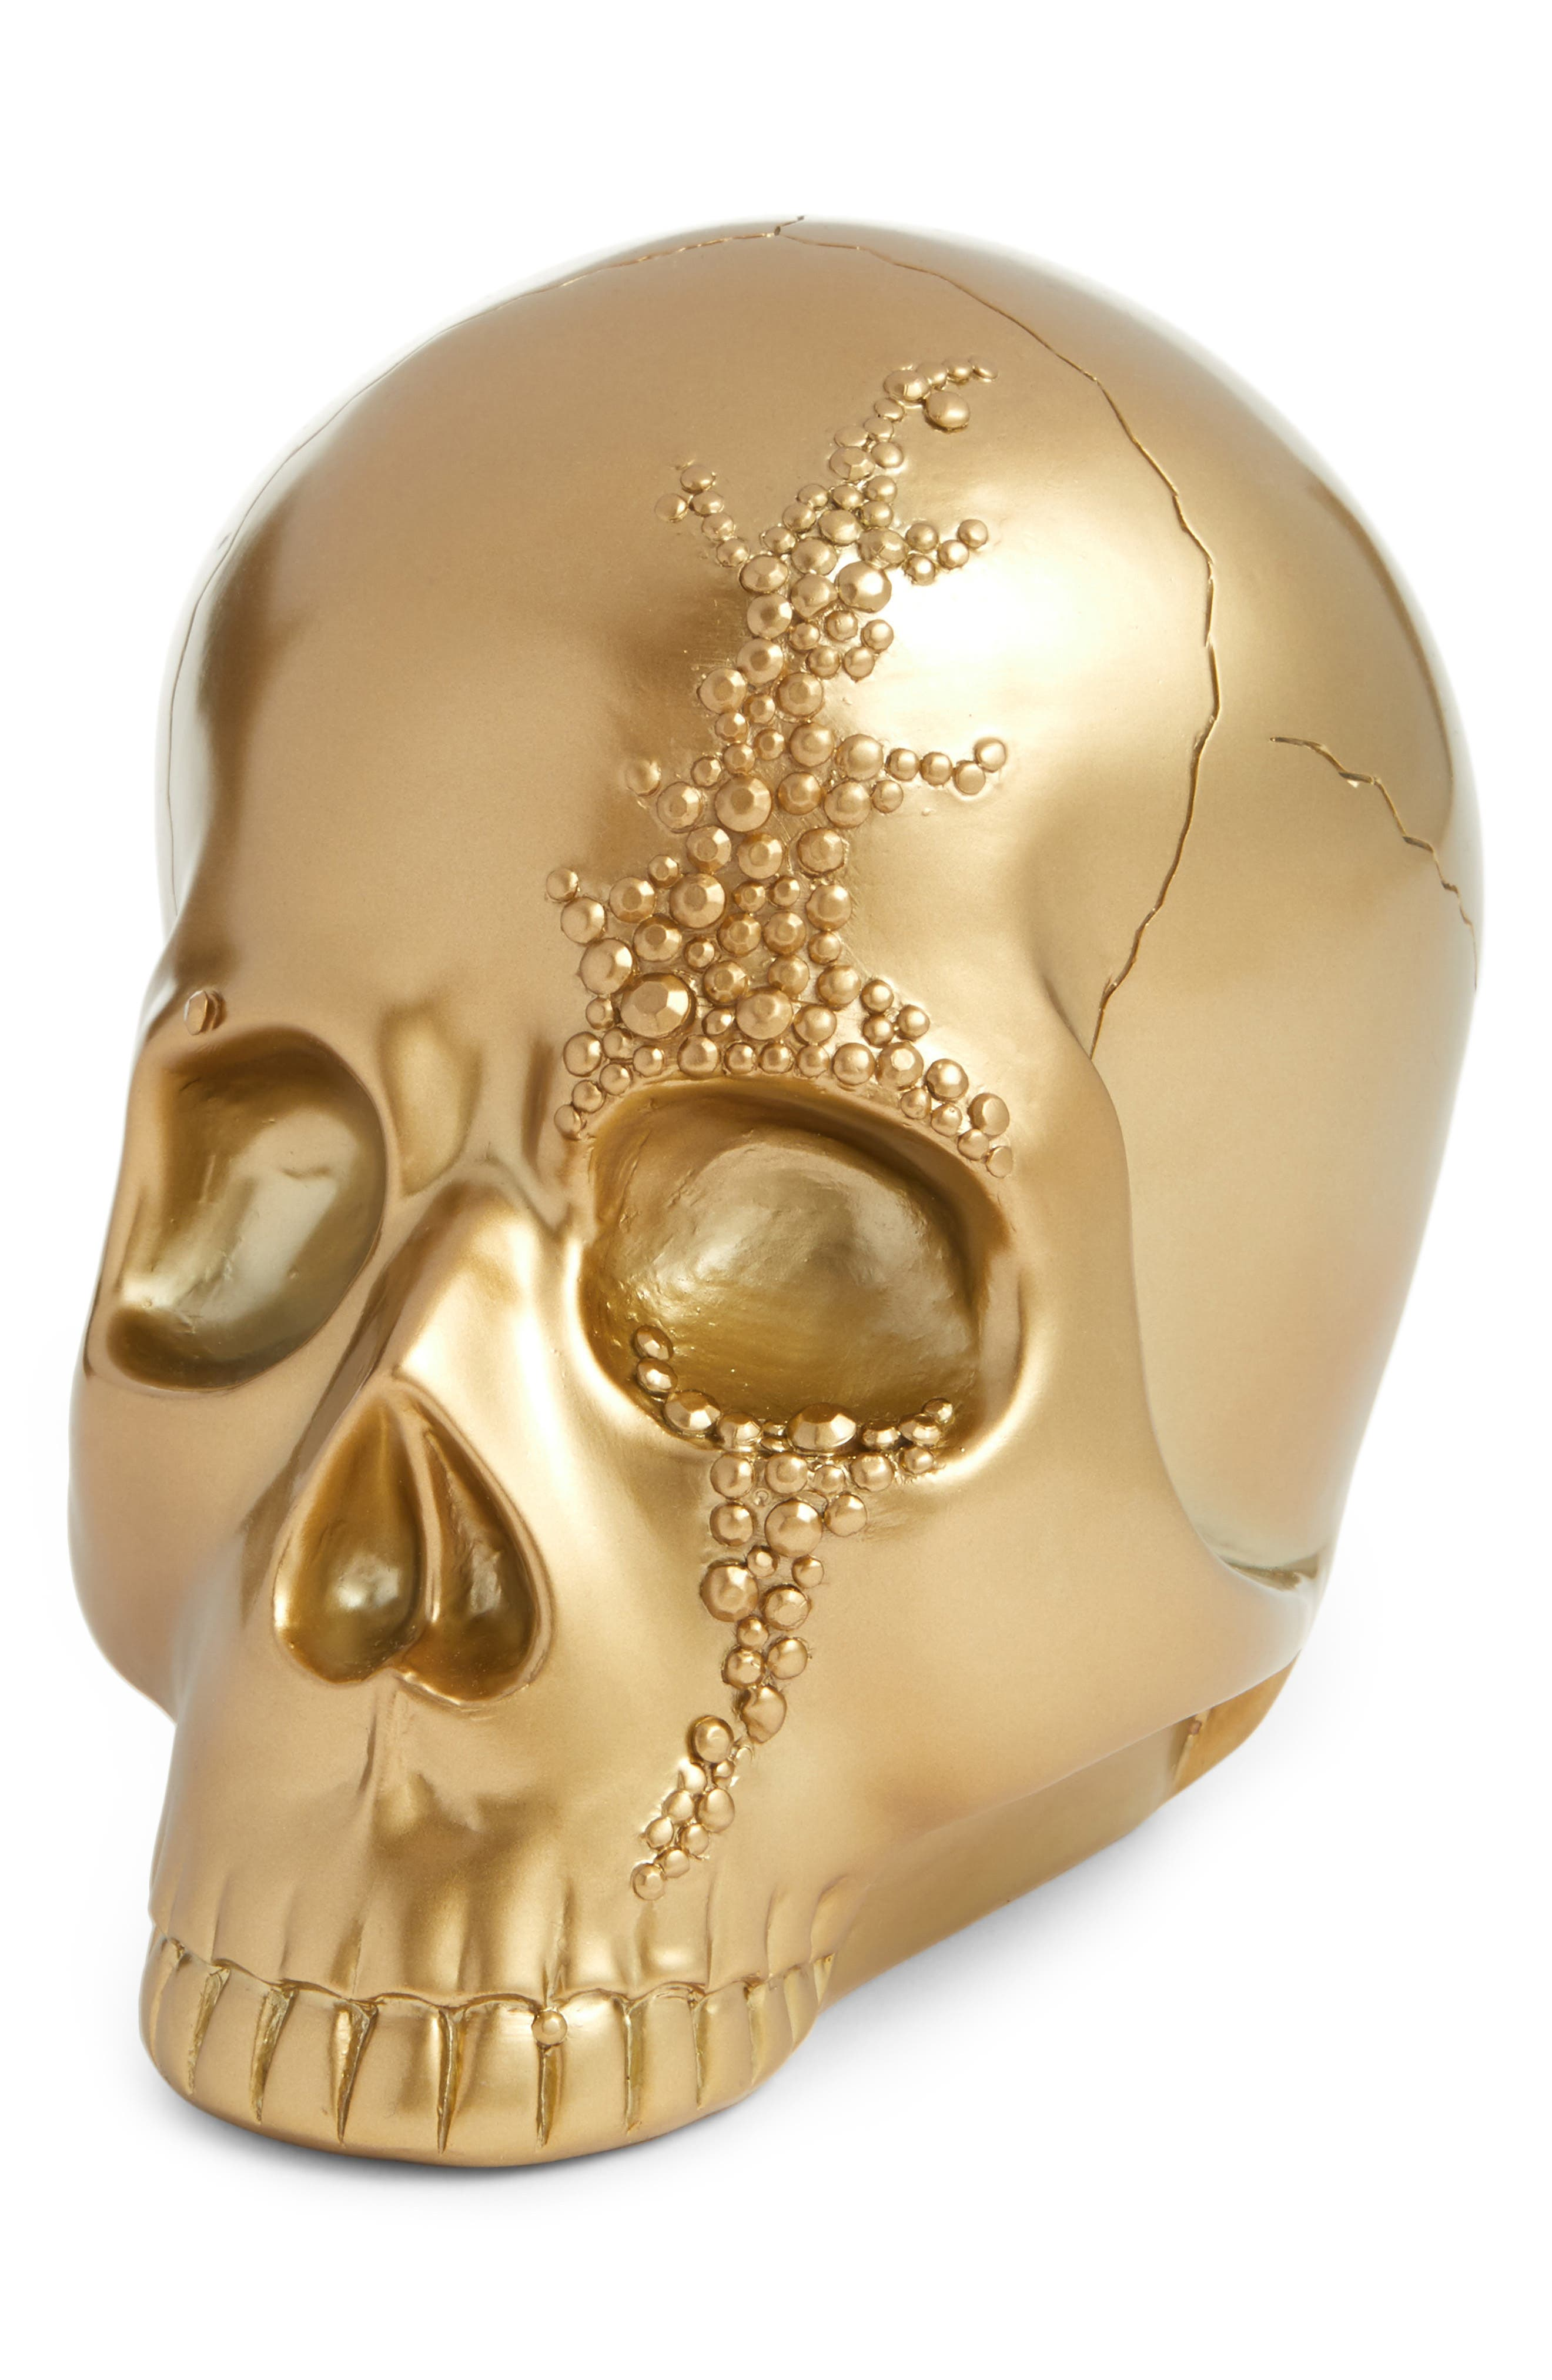 Goldtone Skull Decoration,                             Main thumbnail 1, color,                             710